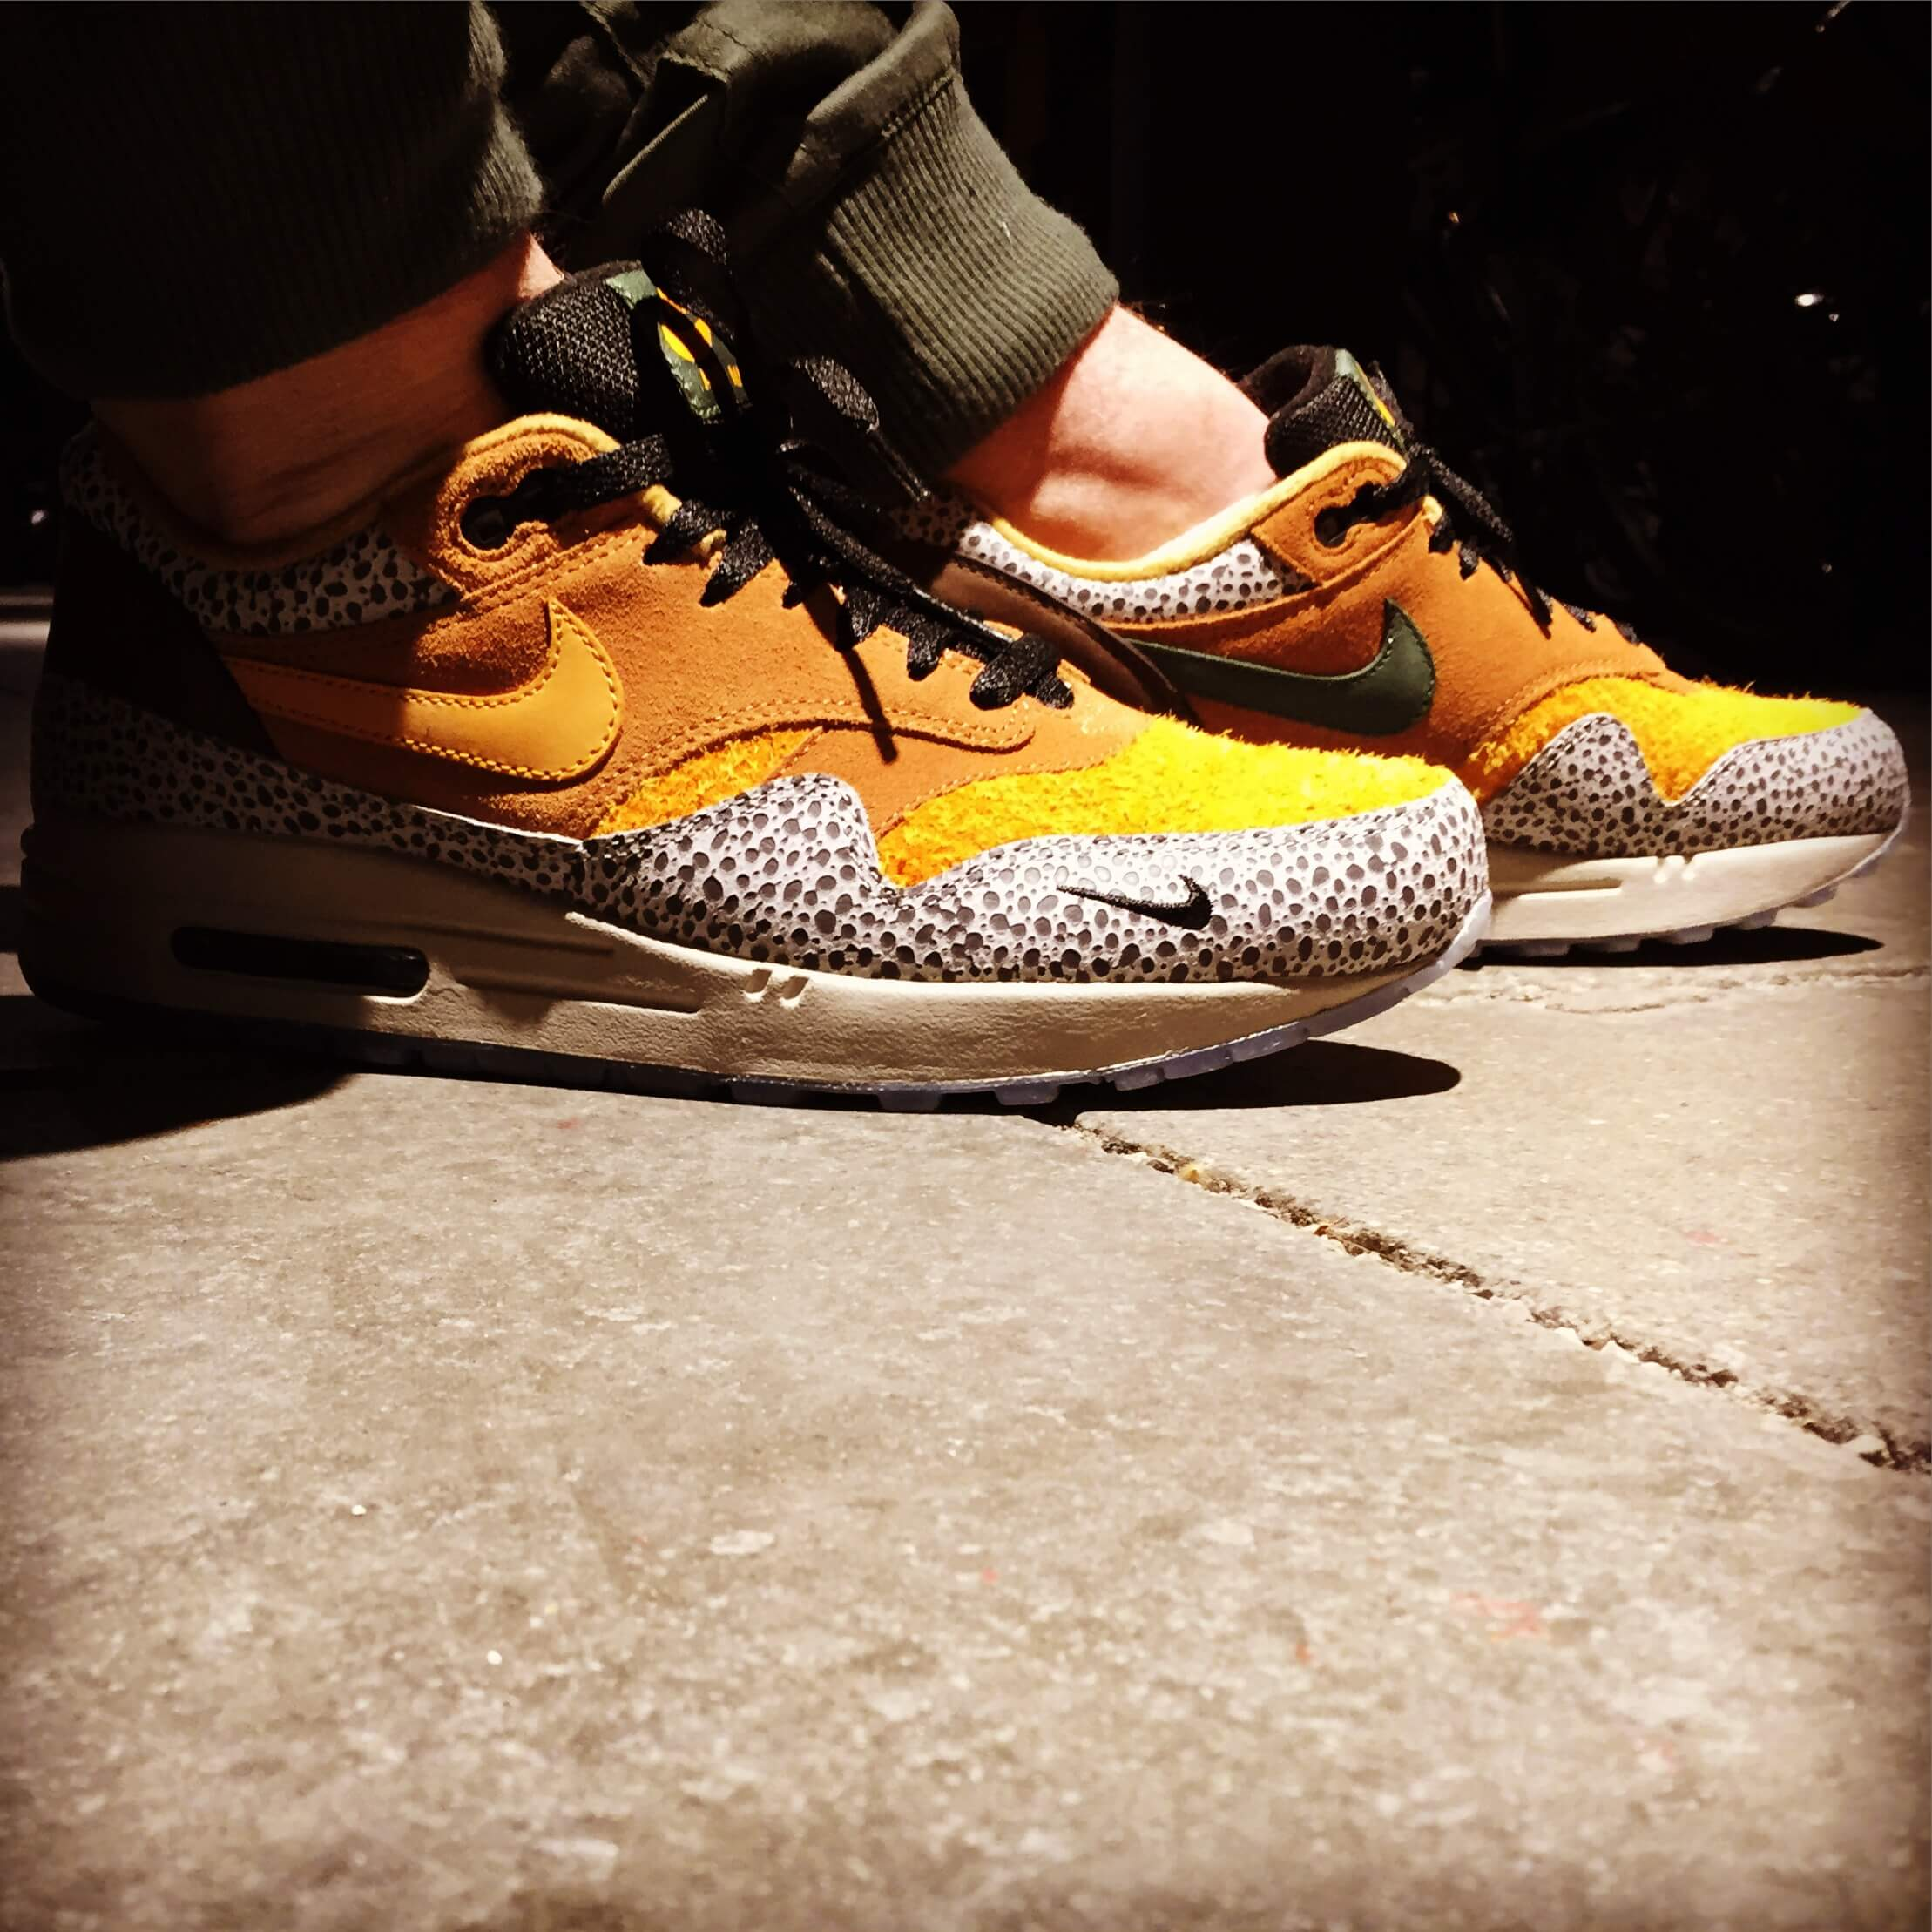 Nike-Air-Max-1-Safari-x-Atmos-Side-View-Alternate-2-Benstah-Onfeet